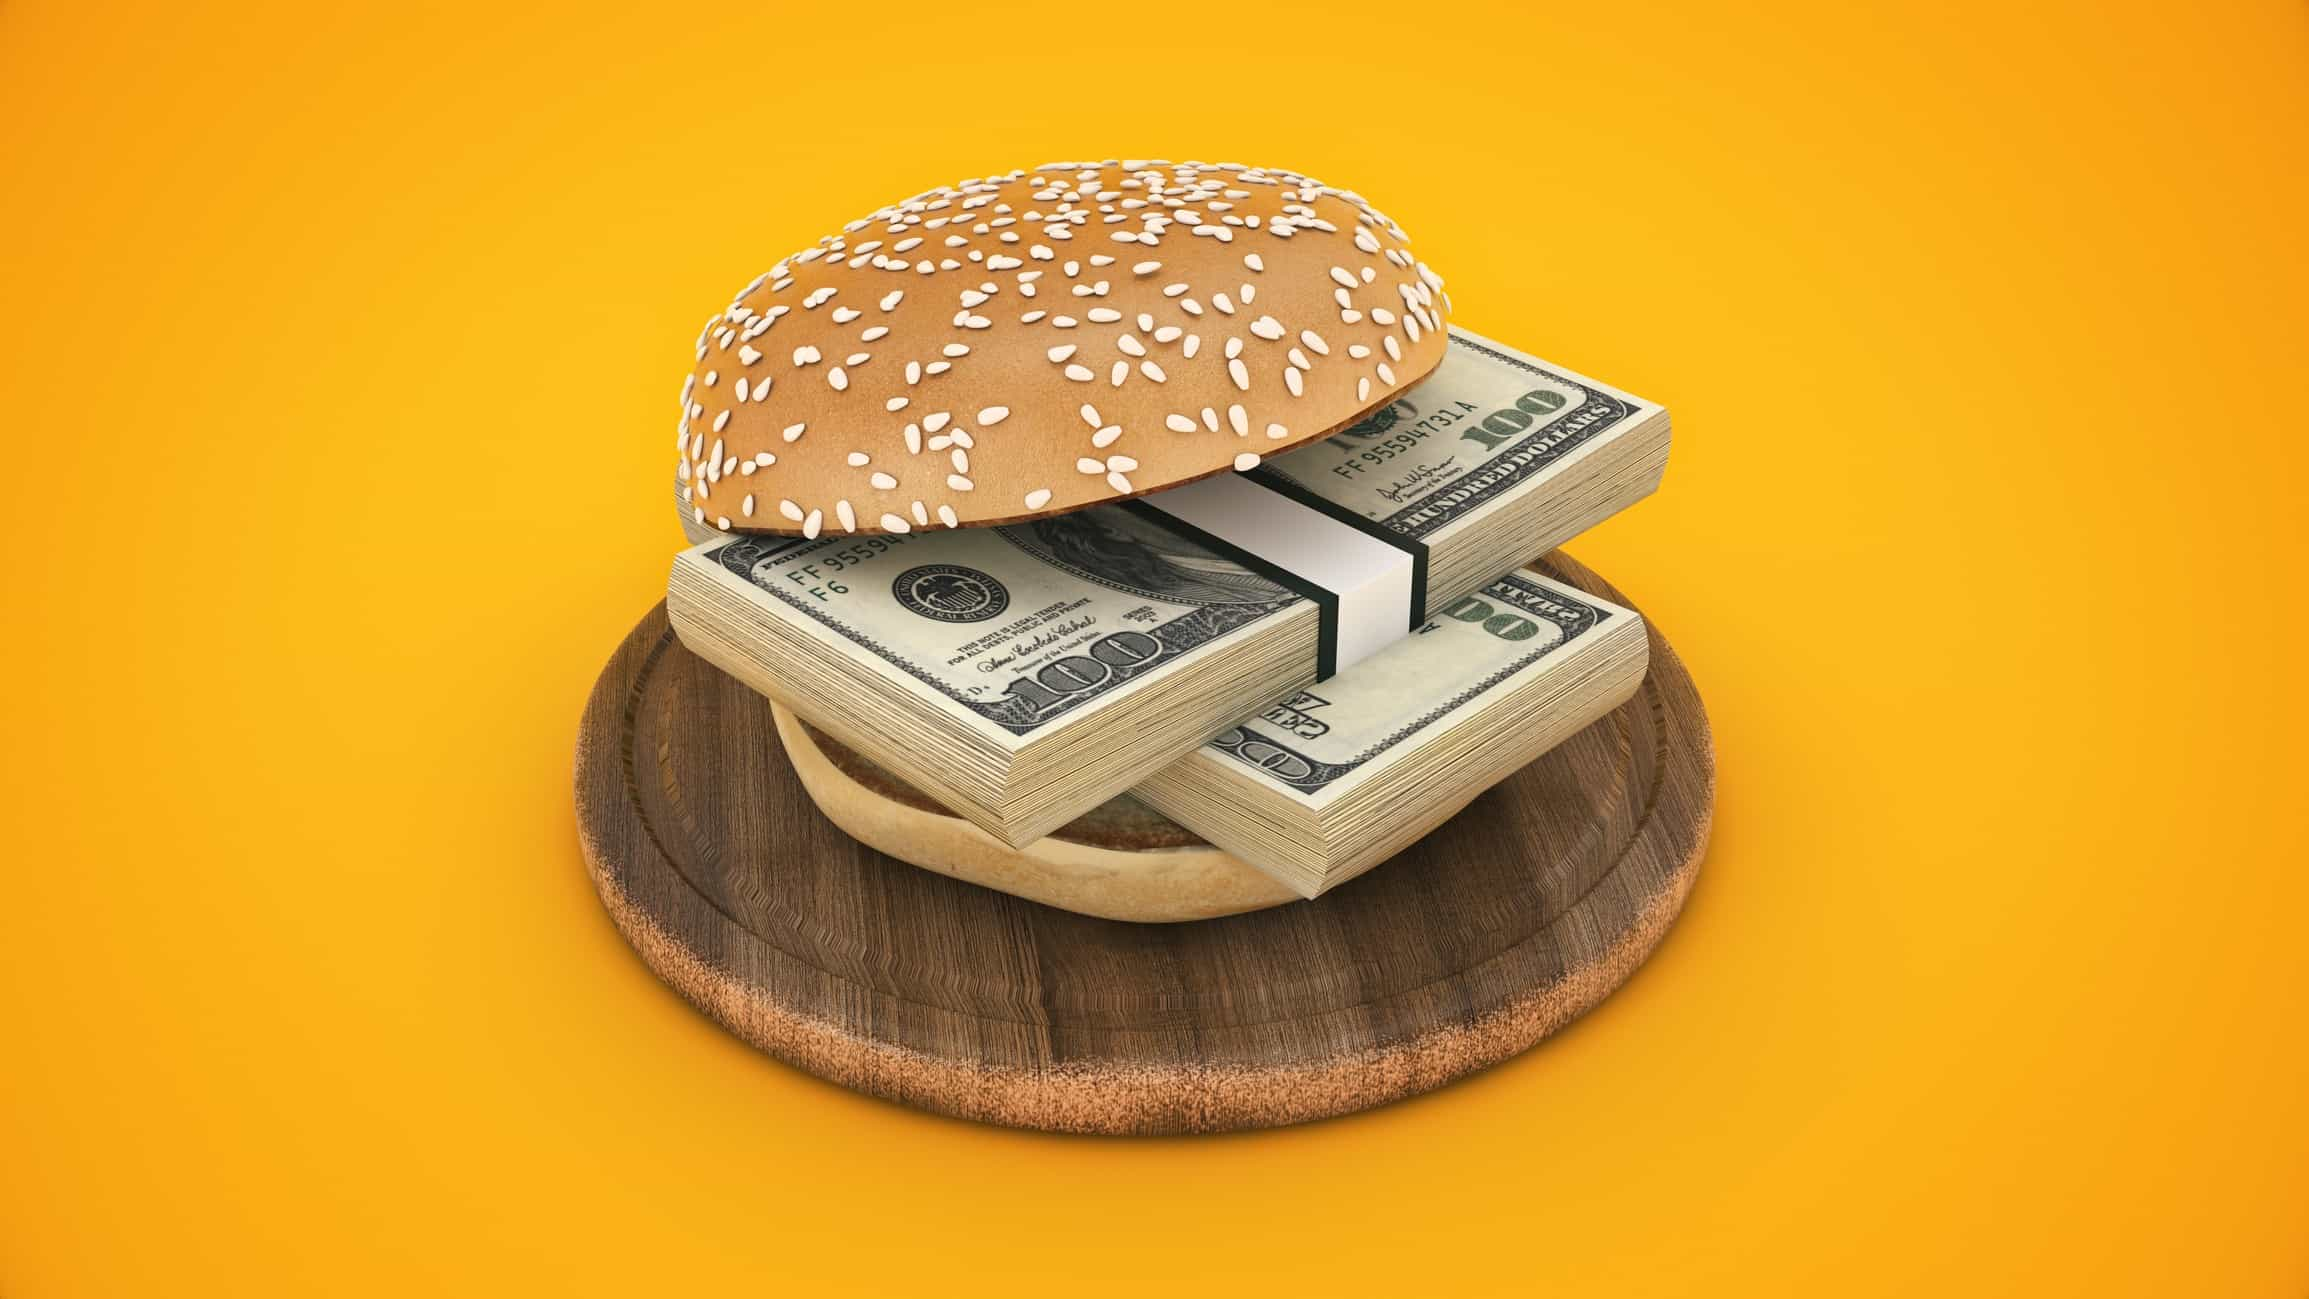 Burger bun around two wads of cash to symbolise food dividend shares